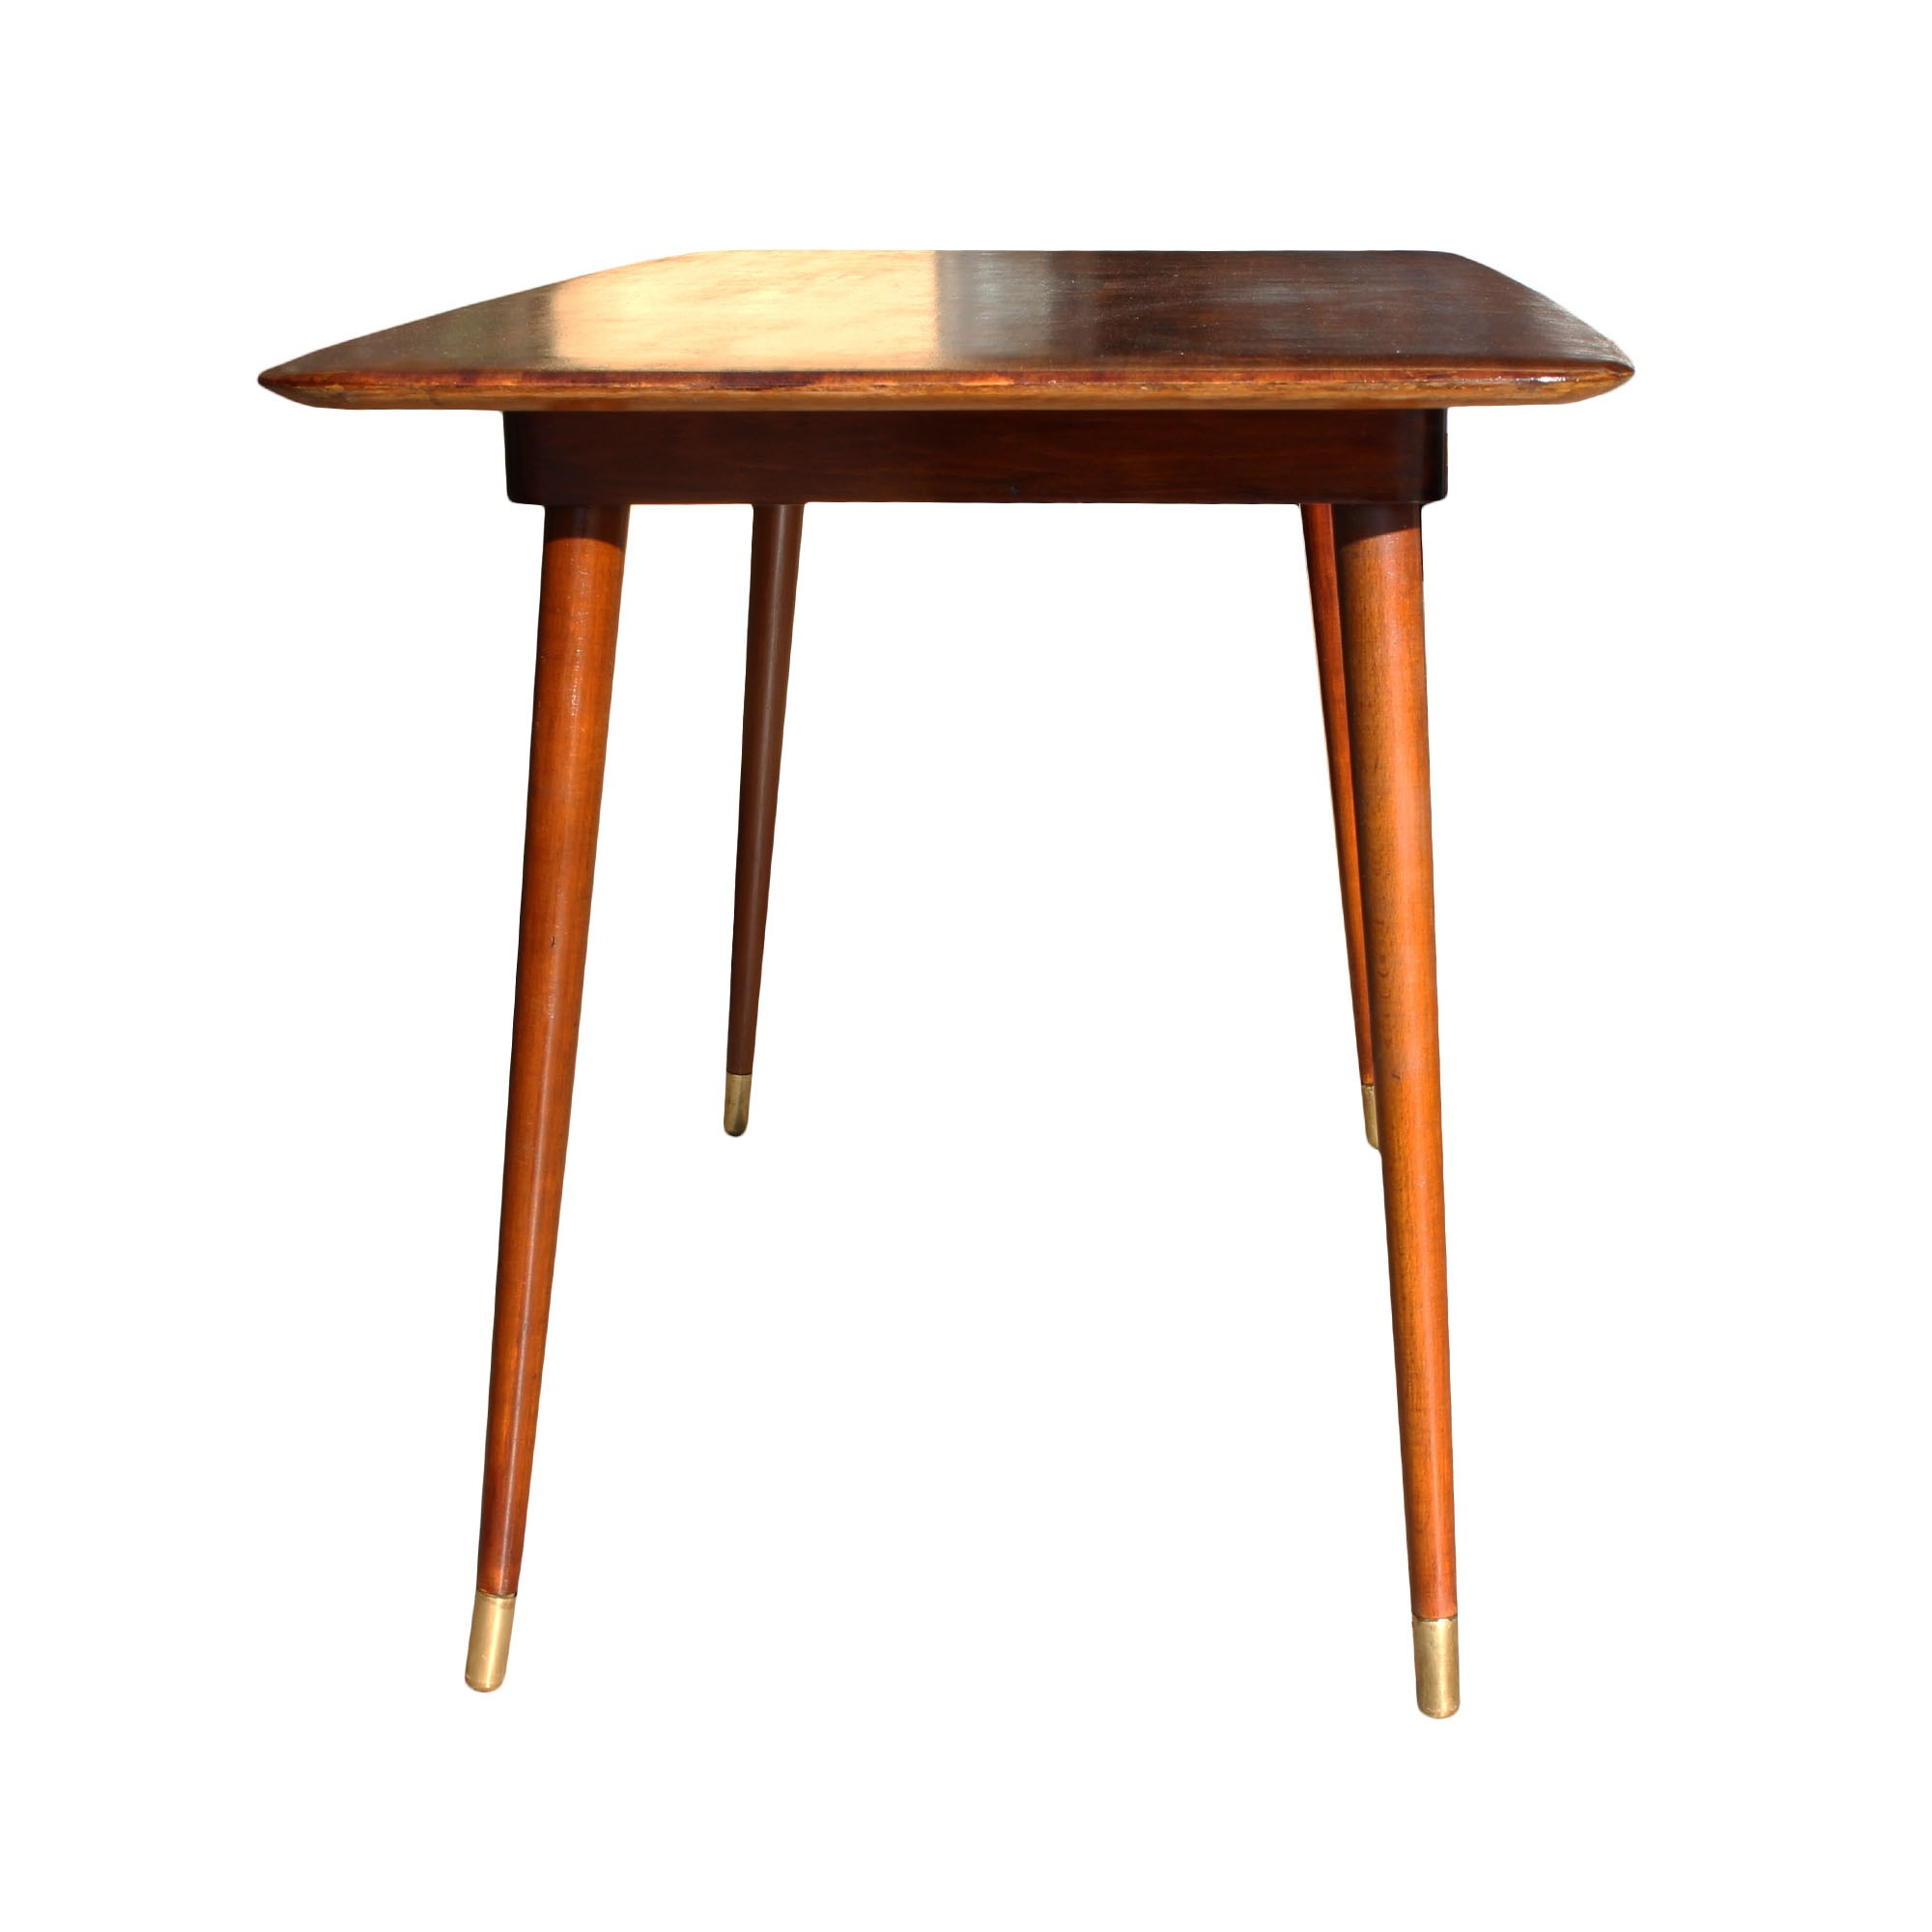 Mid century modern reproduction tripod table lamp - Tapered Legs Giftoncard Info